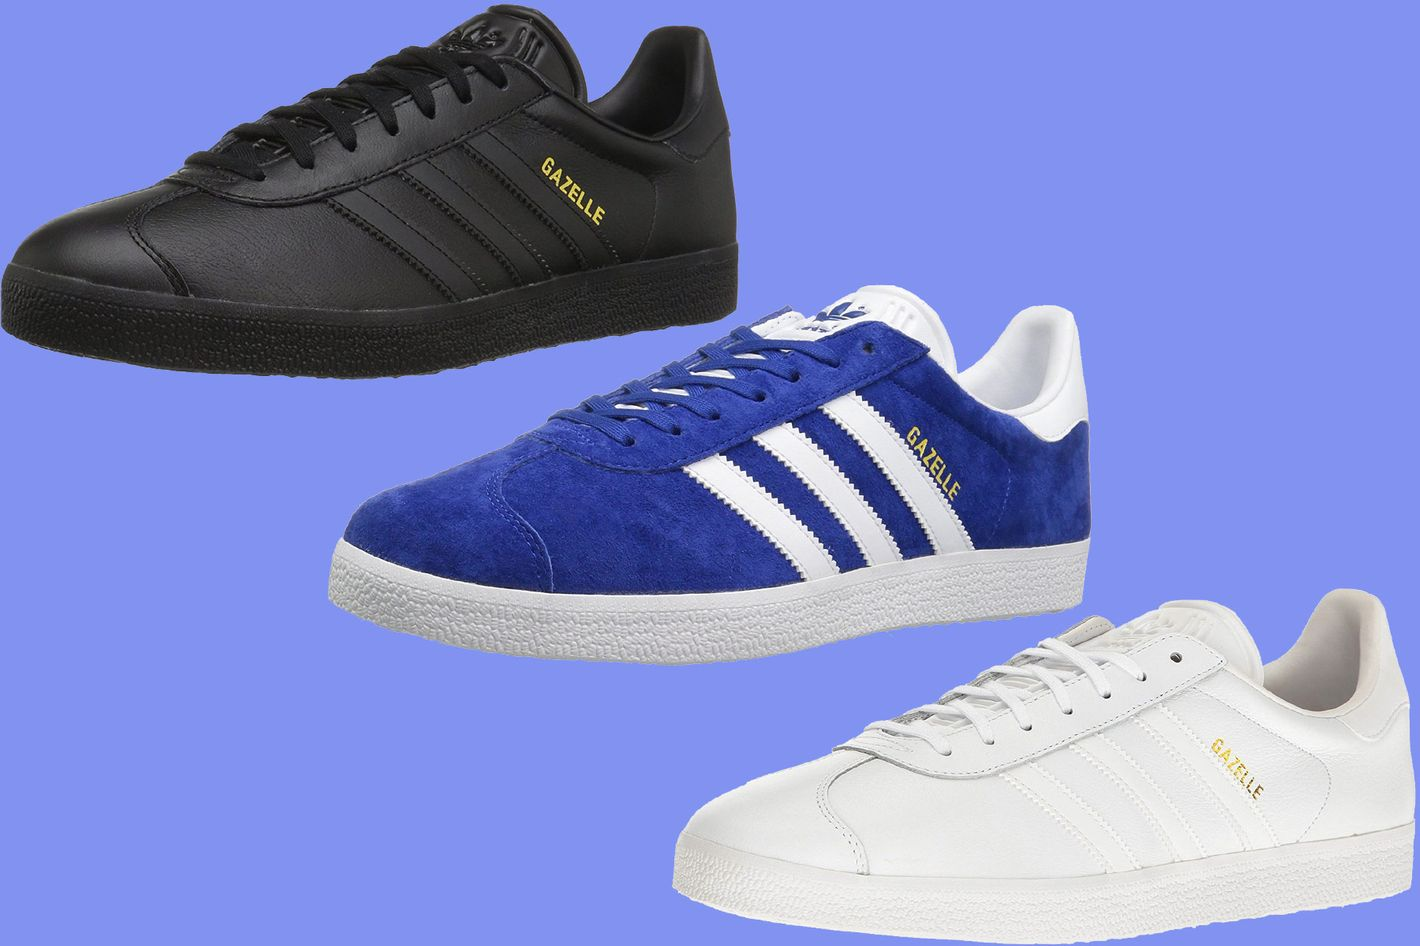 best website f1548 33fe6 Adidas Sneakers - Adidas Gazelles